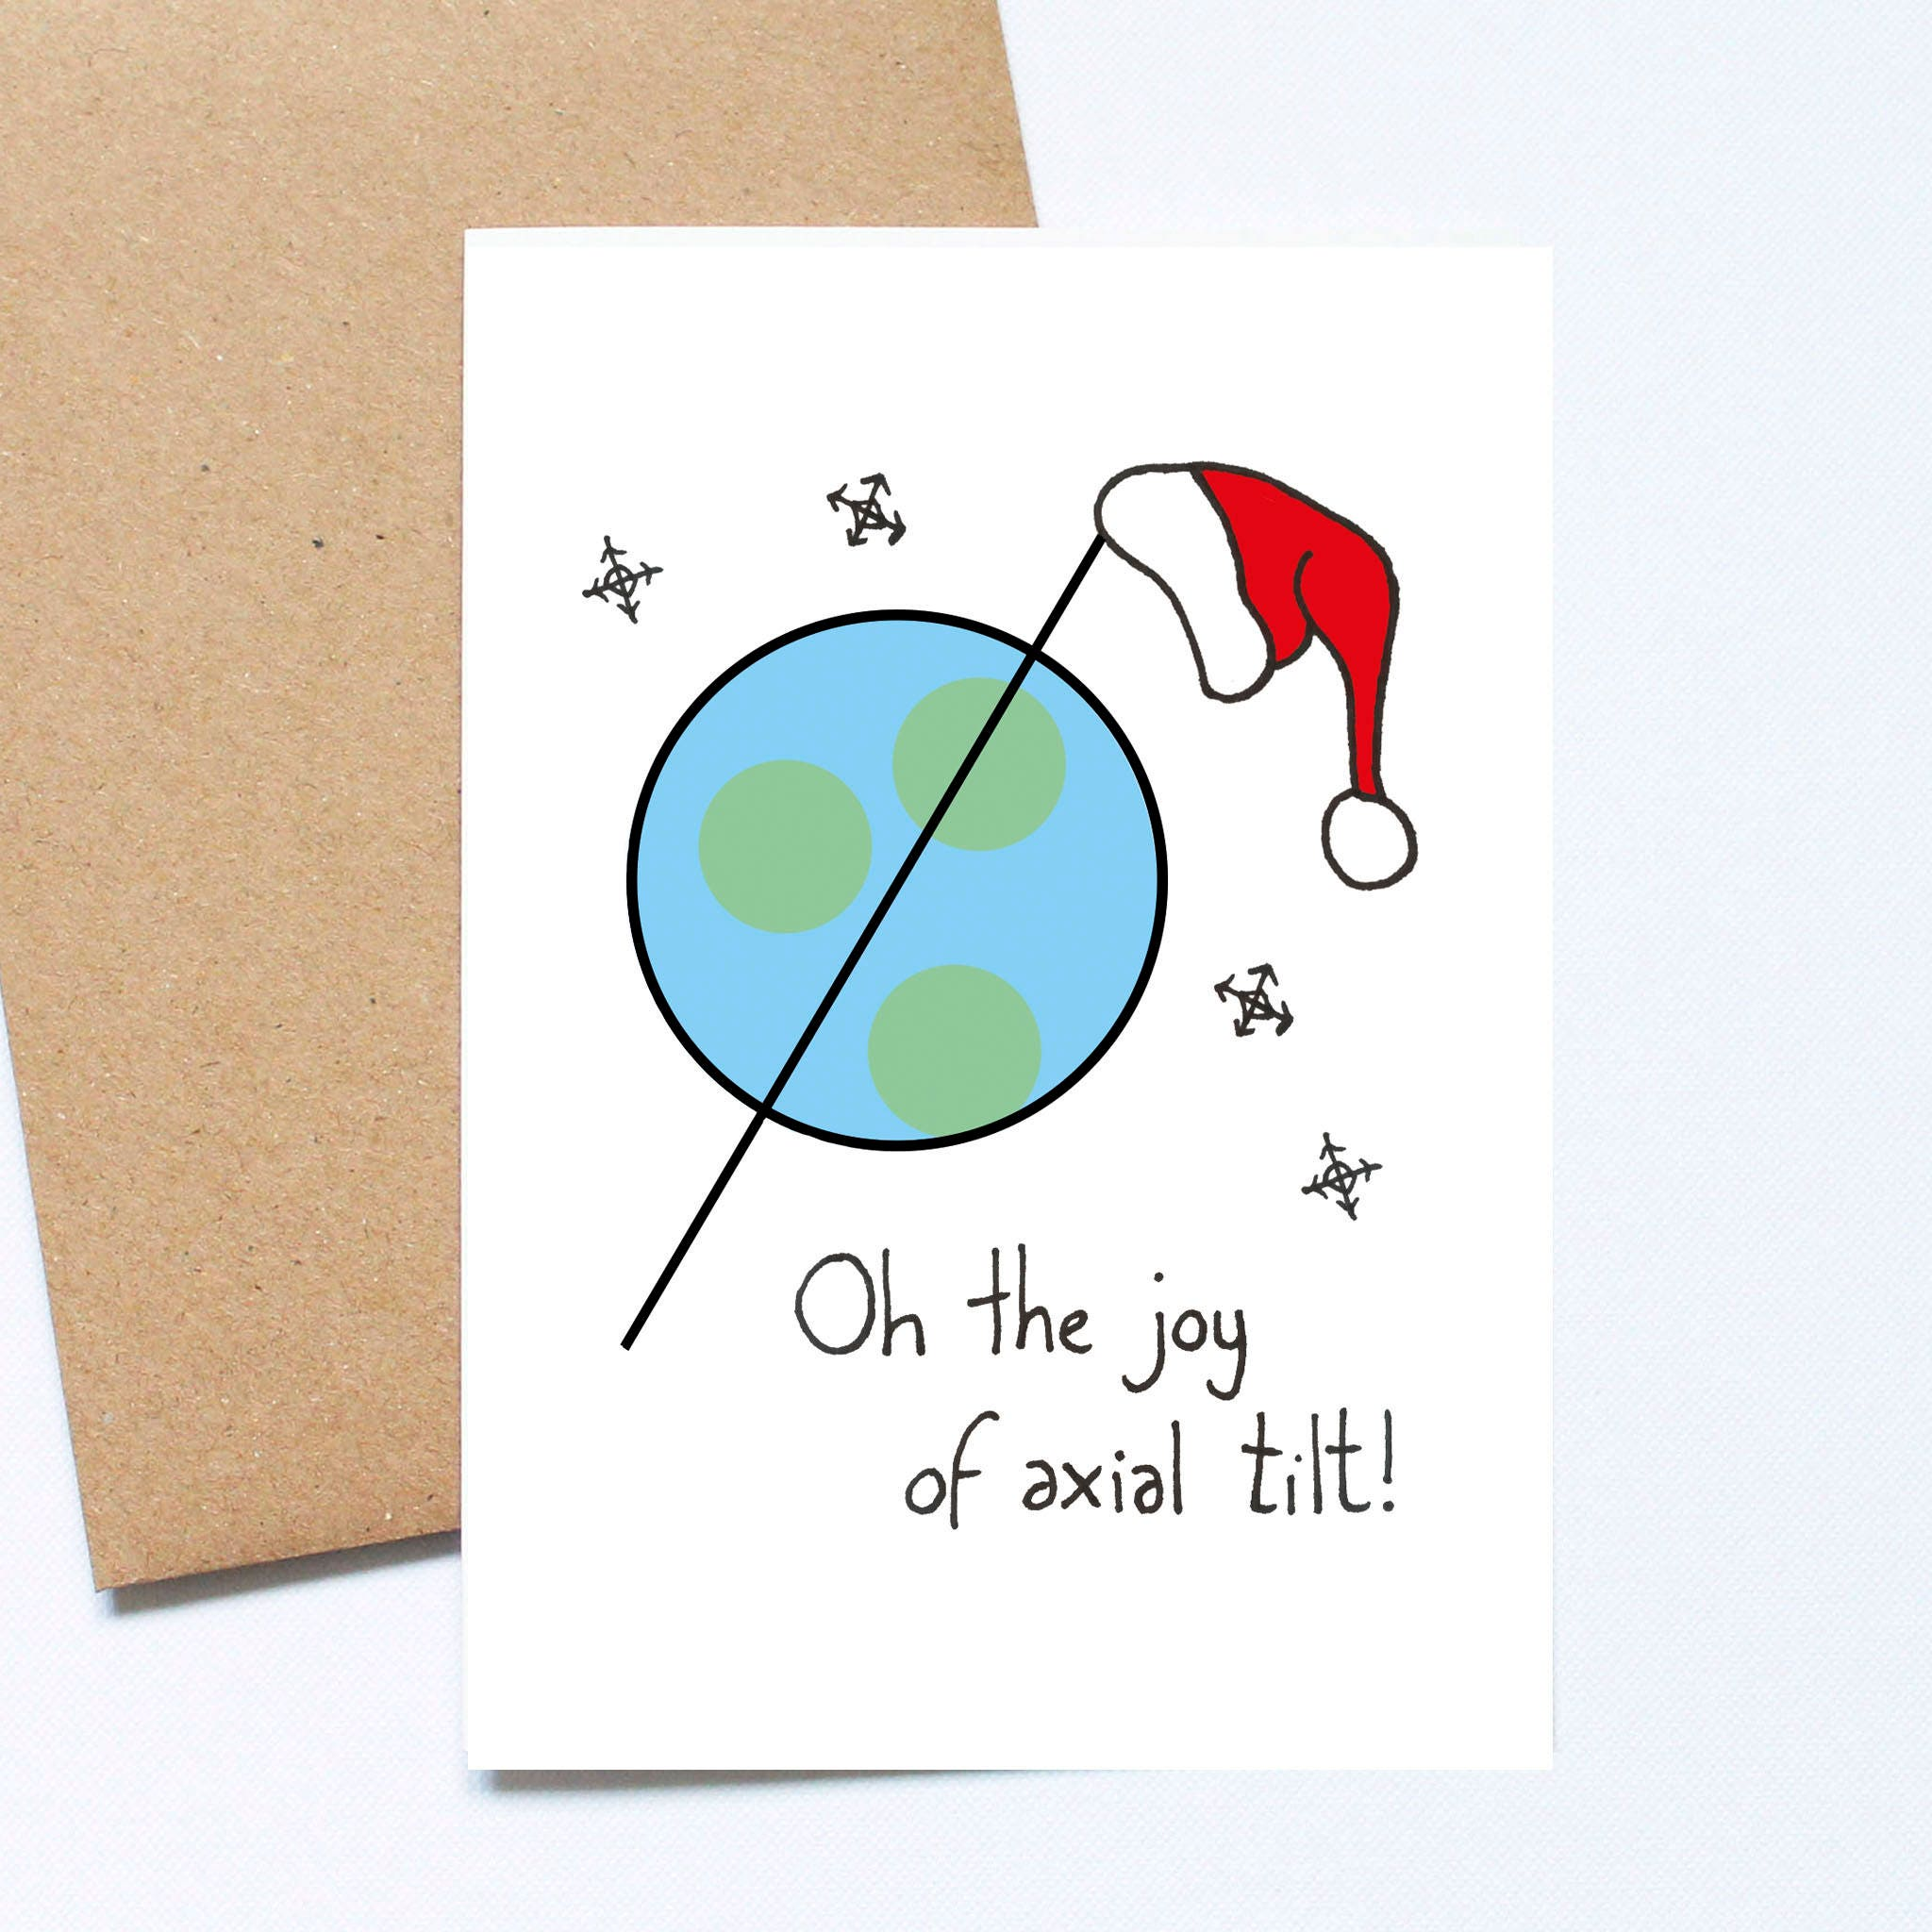 Robot winter solstice card atheist cards 10 pack cards funny robot winter solstice card atheist cards 10 pack cards funny holiday cards m4hsunfo